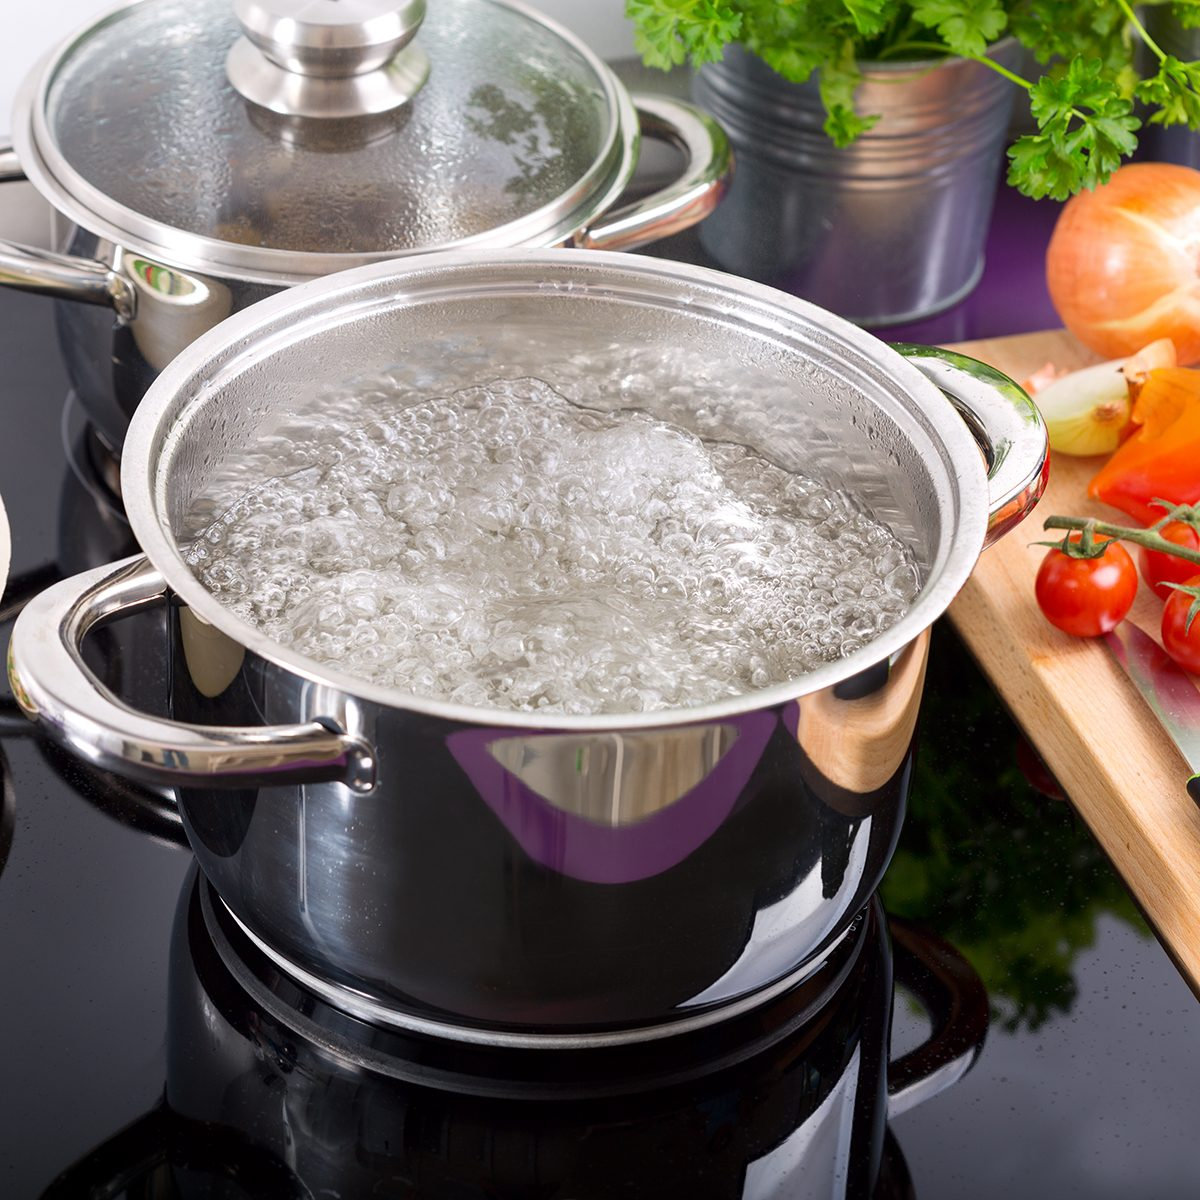 pan of boiling water on the cooker in the kitchen;